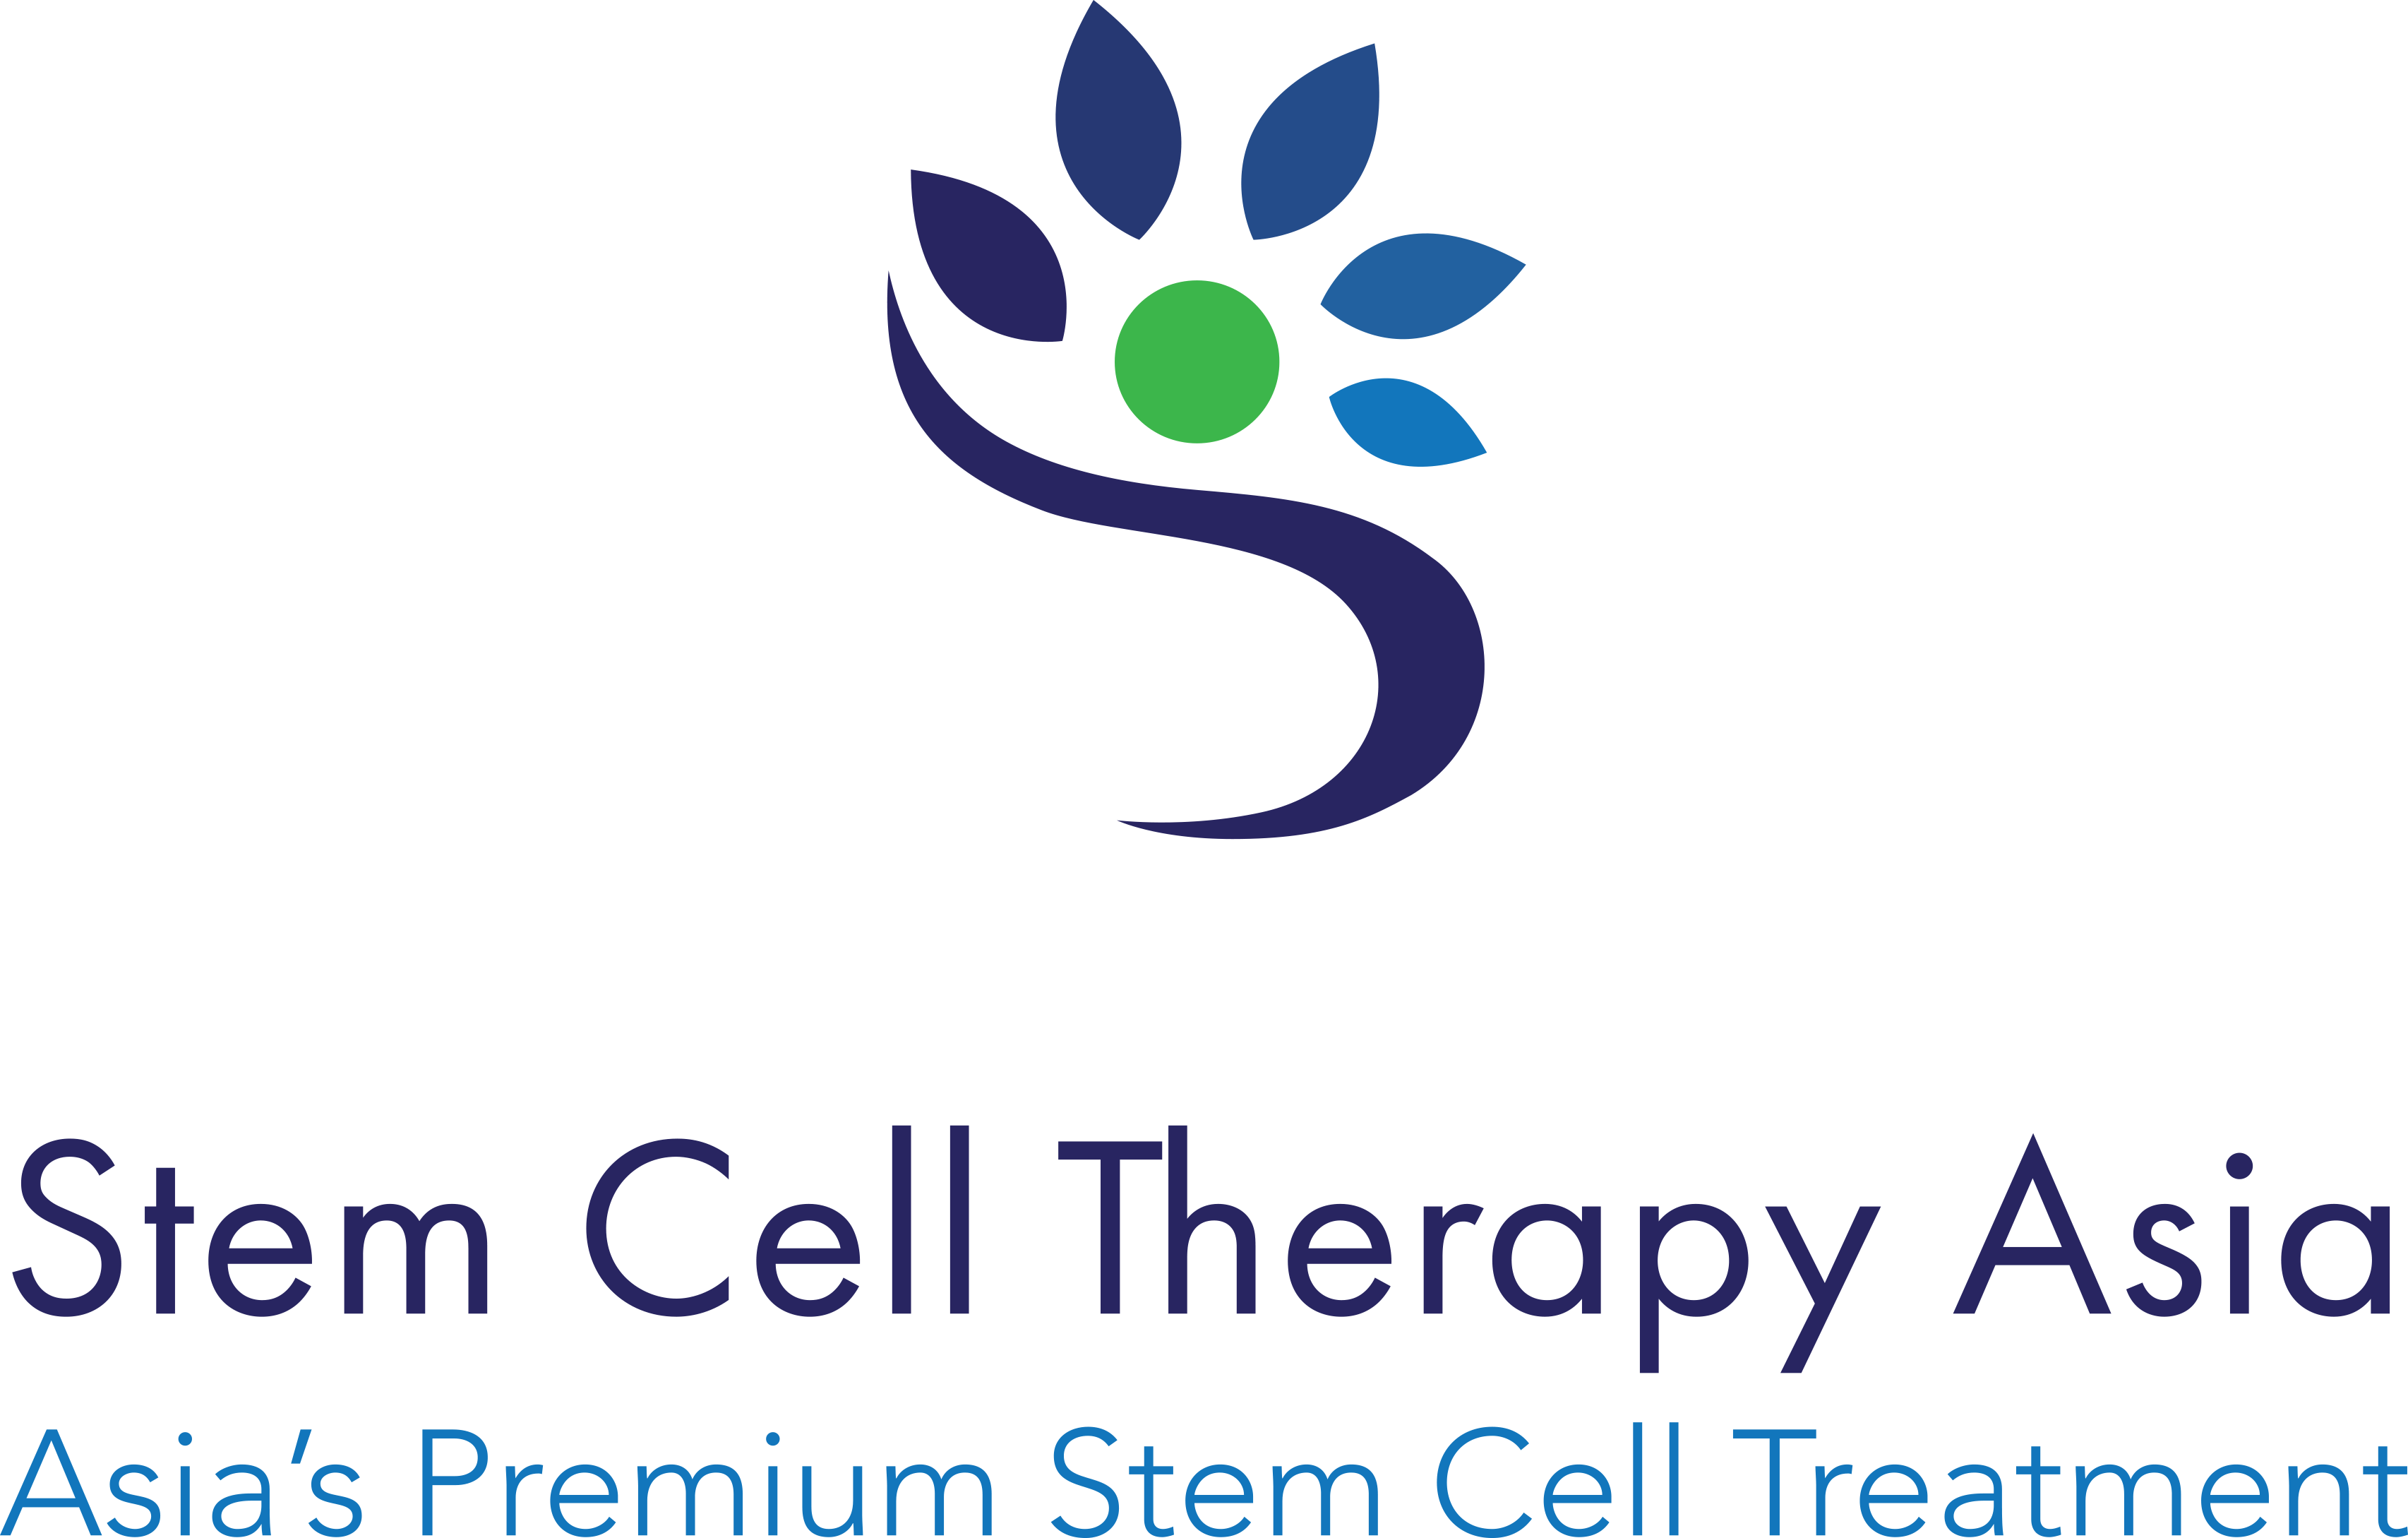 Stem Cell Therapy Asia